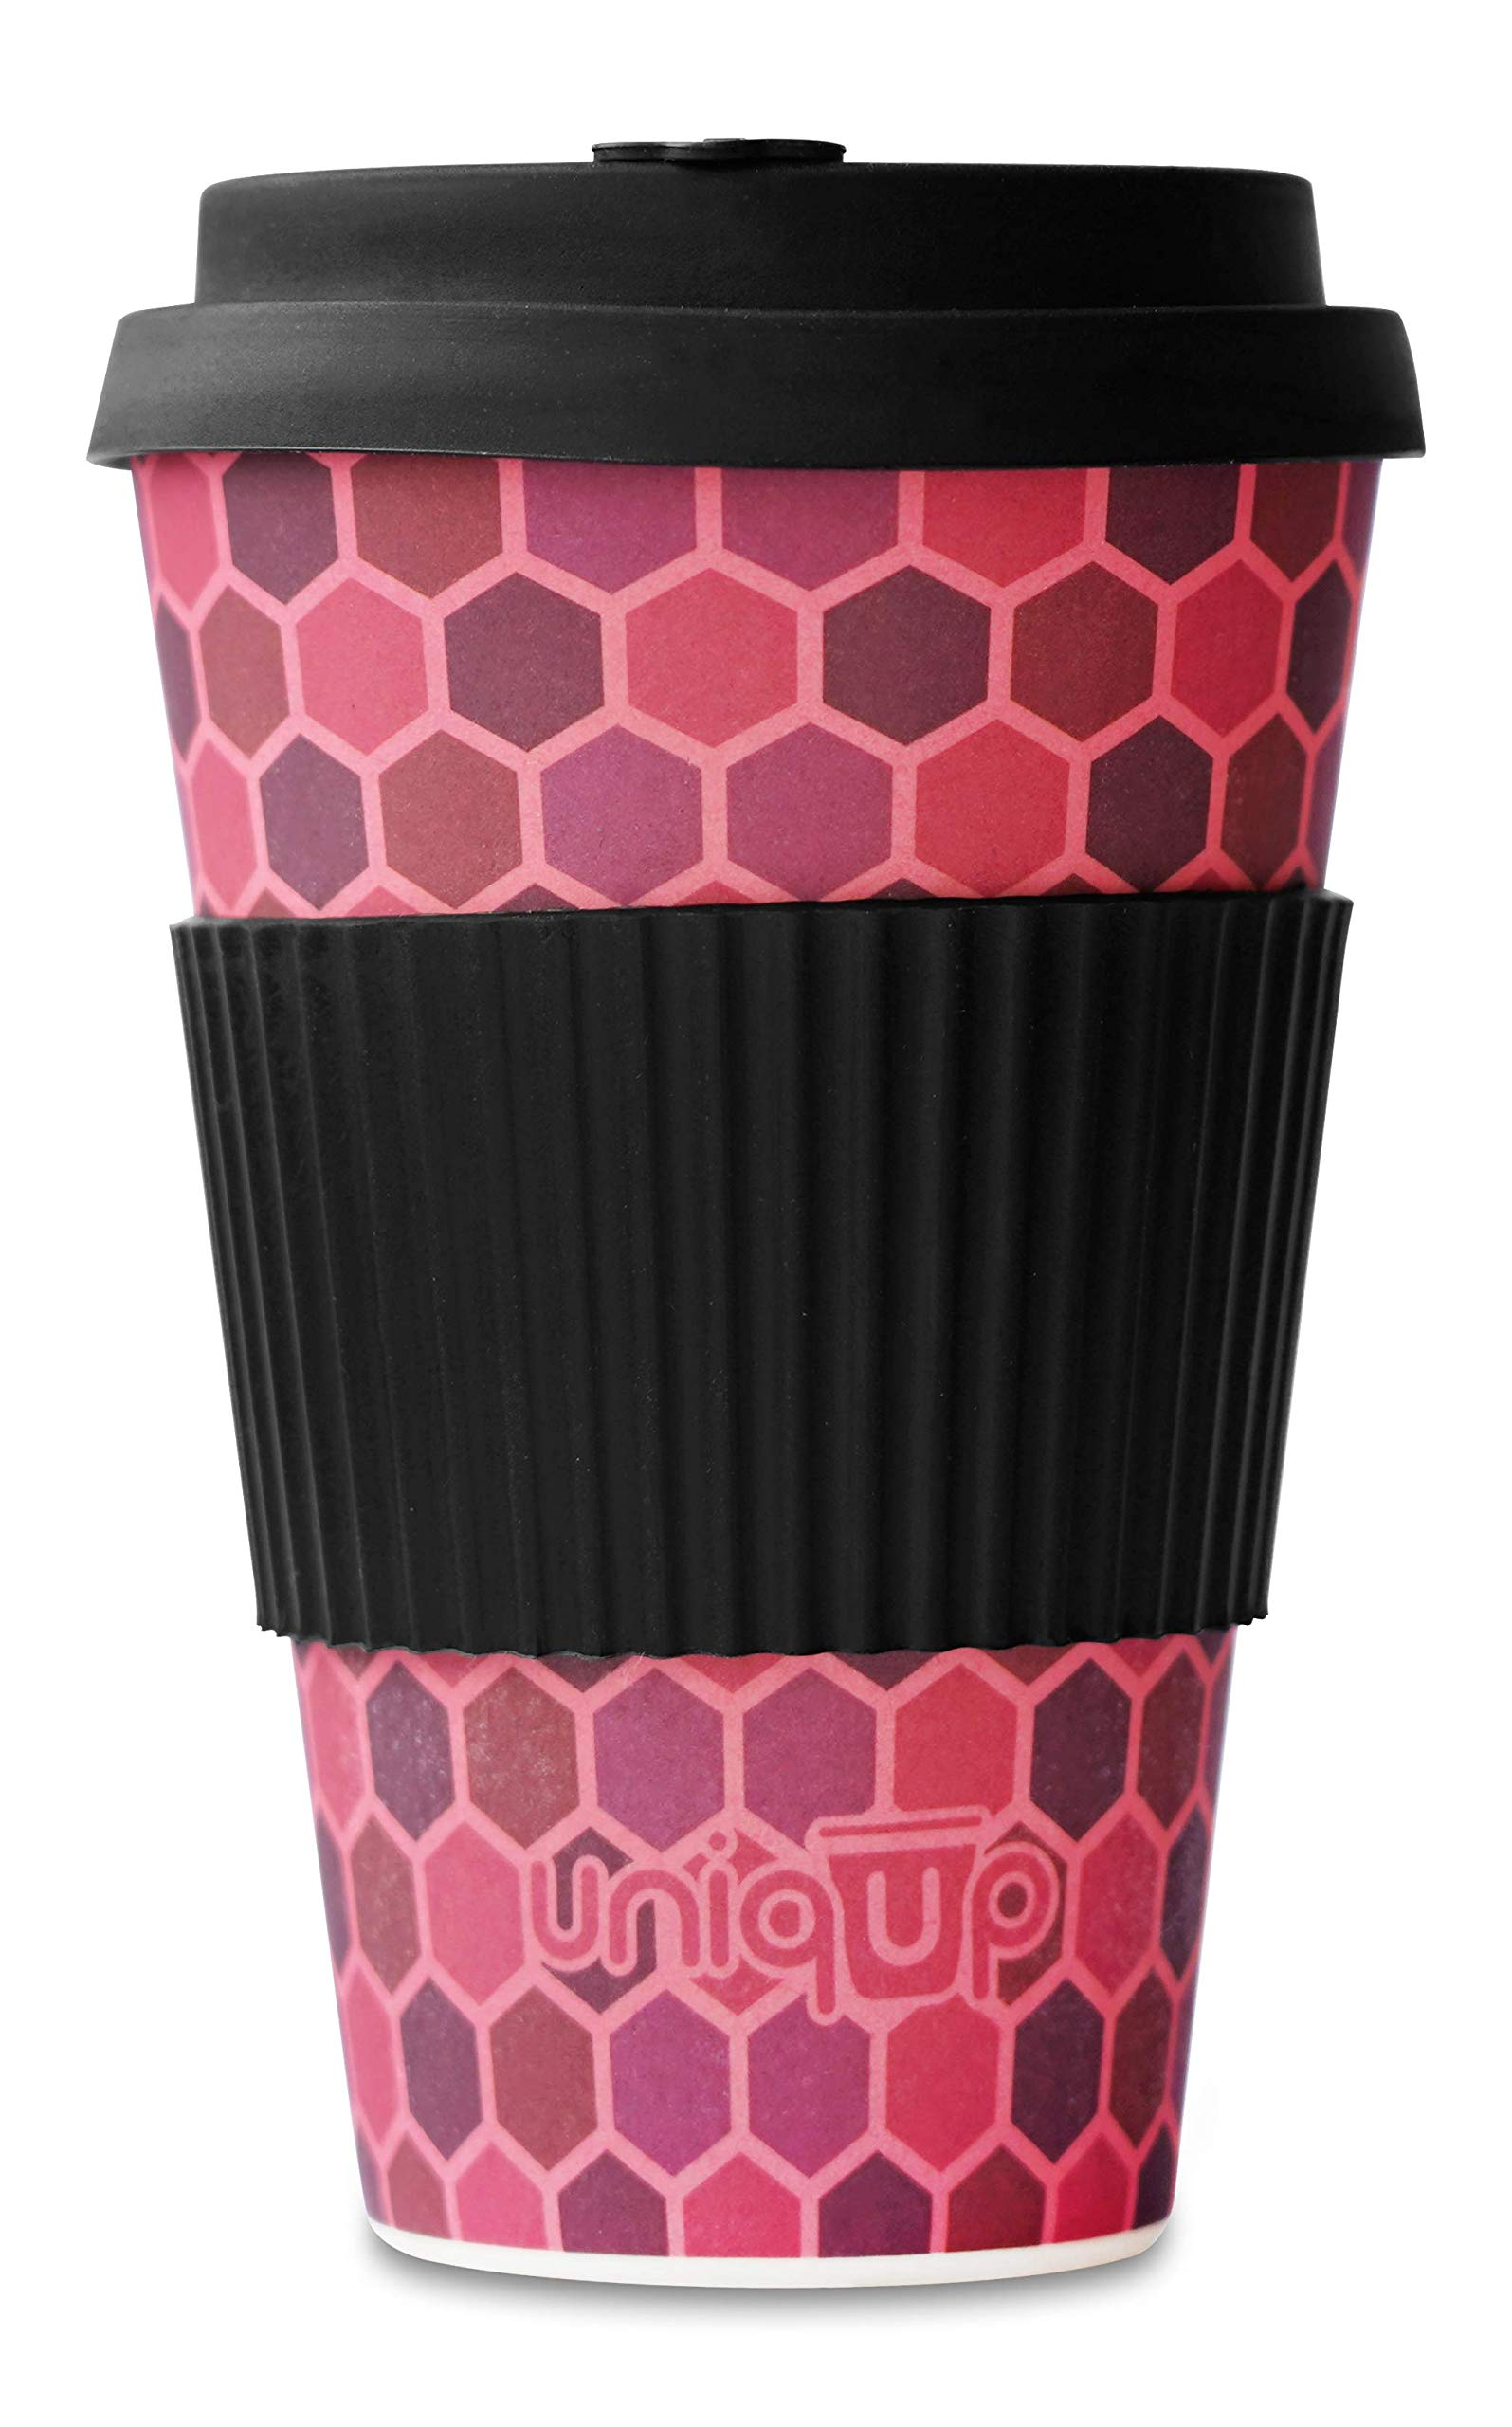 Reusable-Coffee-Cup-Eco-Friendly-Made-from-Natural-and-Organic-Bamboo-Fibre-Travel-Mug-Uniqup